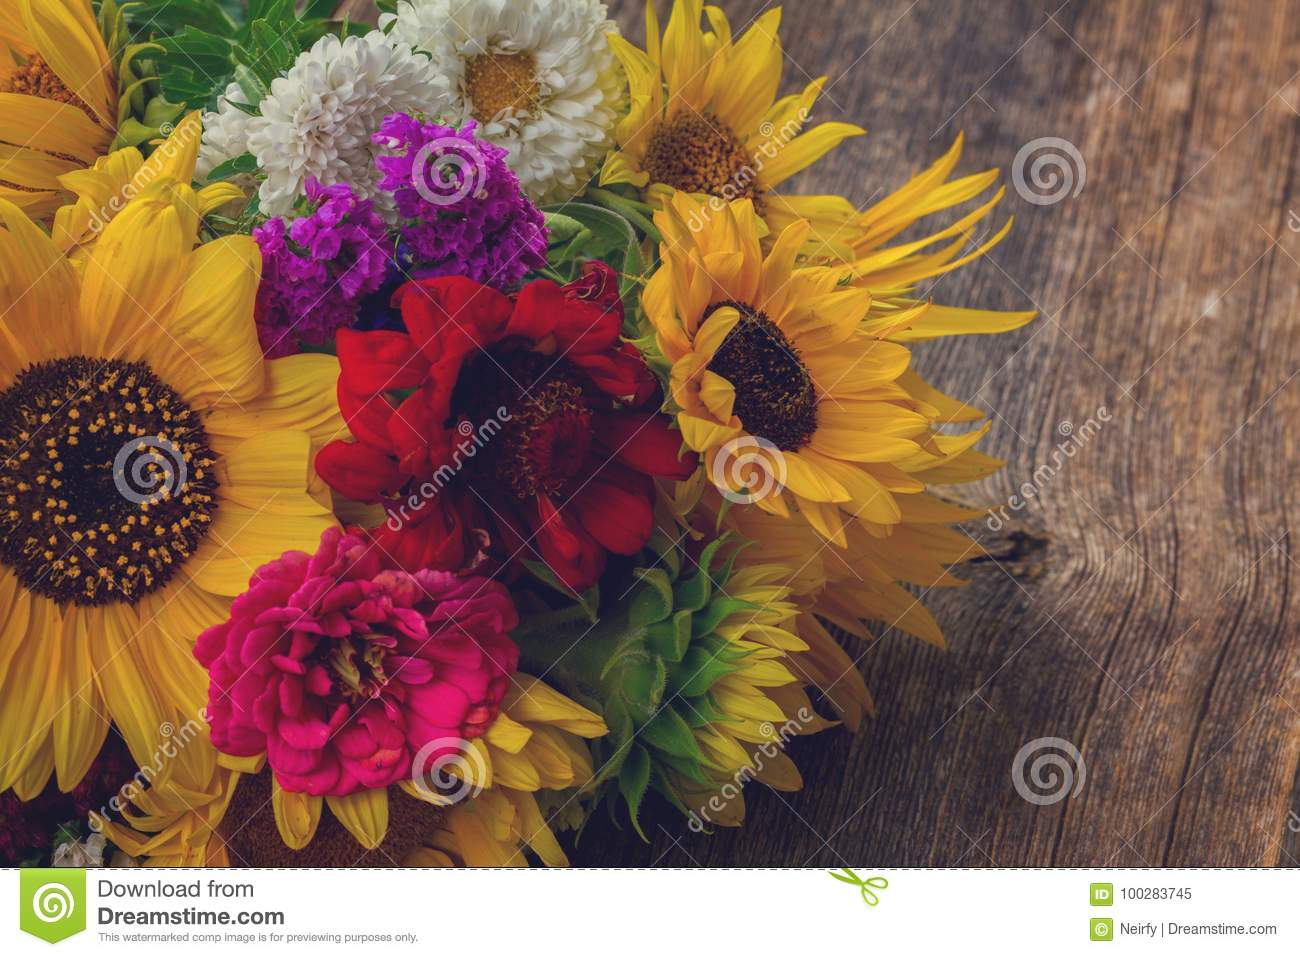 Bright fall bouquet stock image image of plant decoration 100283745 download bright fall bouquet stock image image of plant decoration 100283745 izmirmasajfo